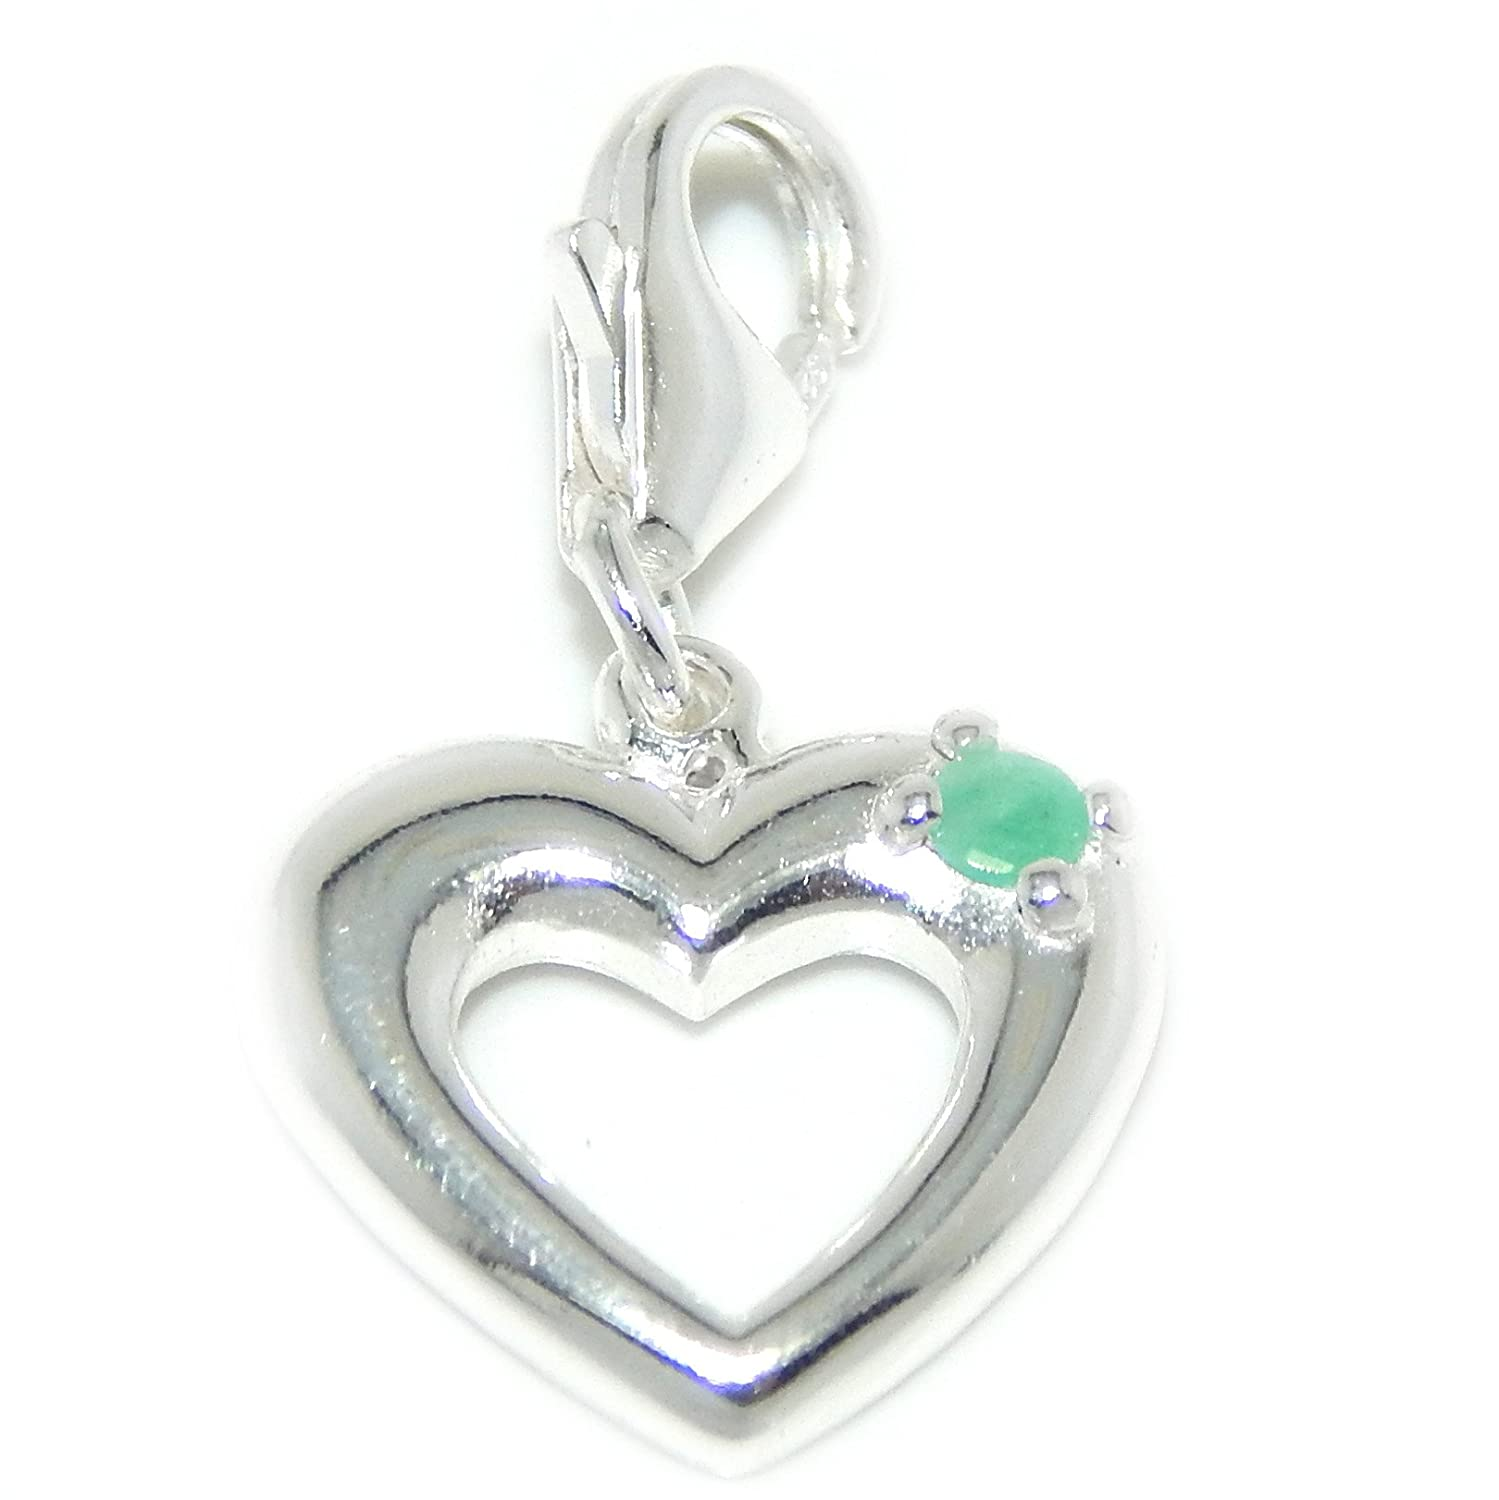 925 Sterling Silver Dangling Open Heart with Small Crystal Clip-on Charm Bead